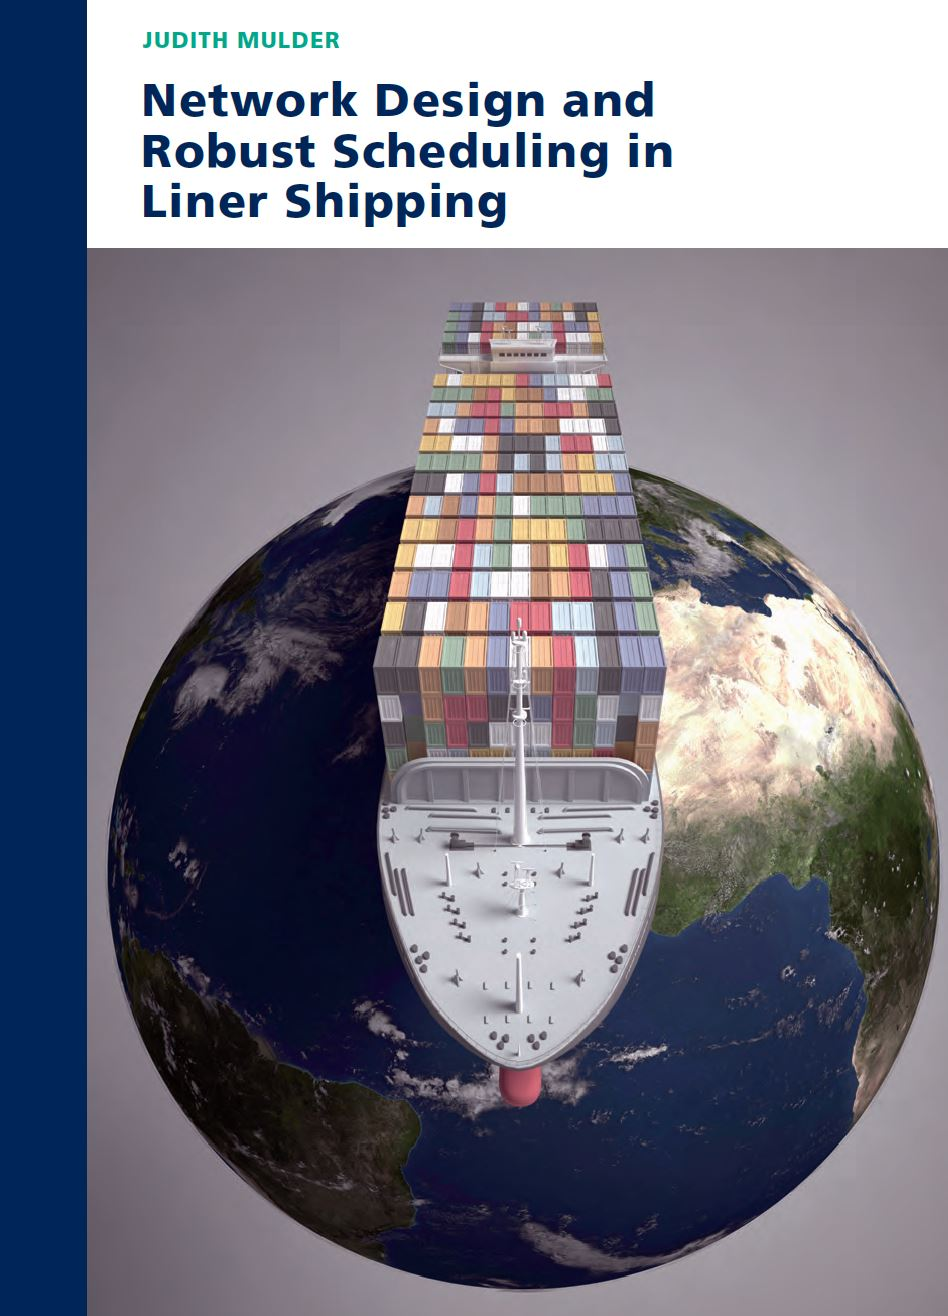 Network Design and Robust Scheduling in Liner Shipping